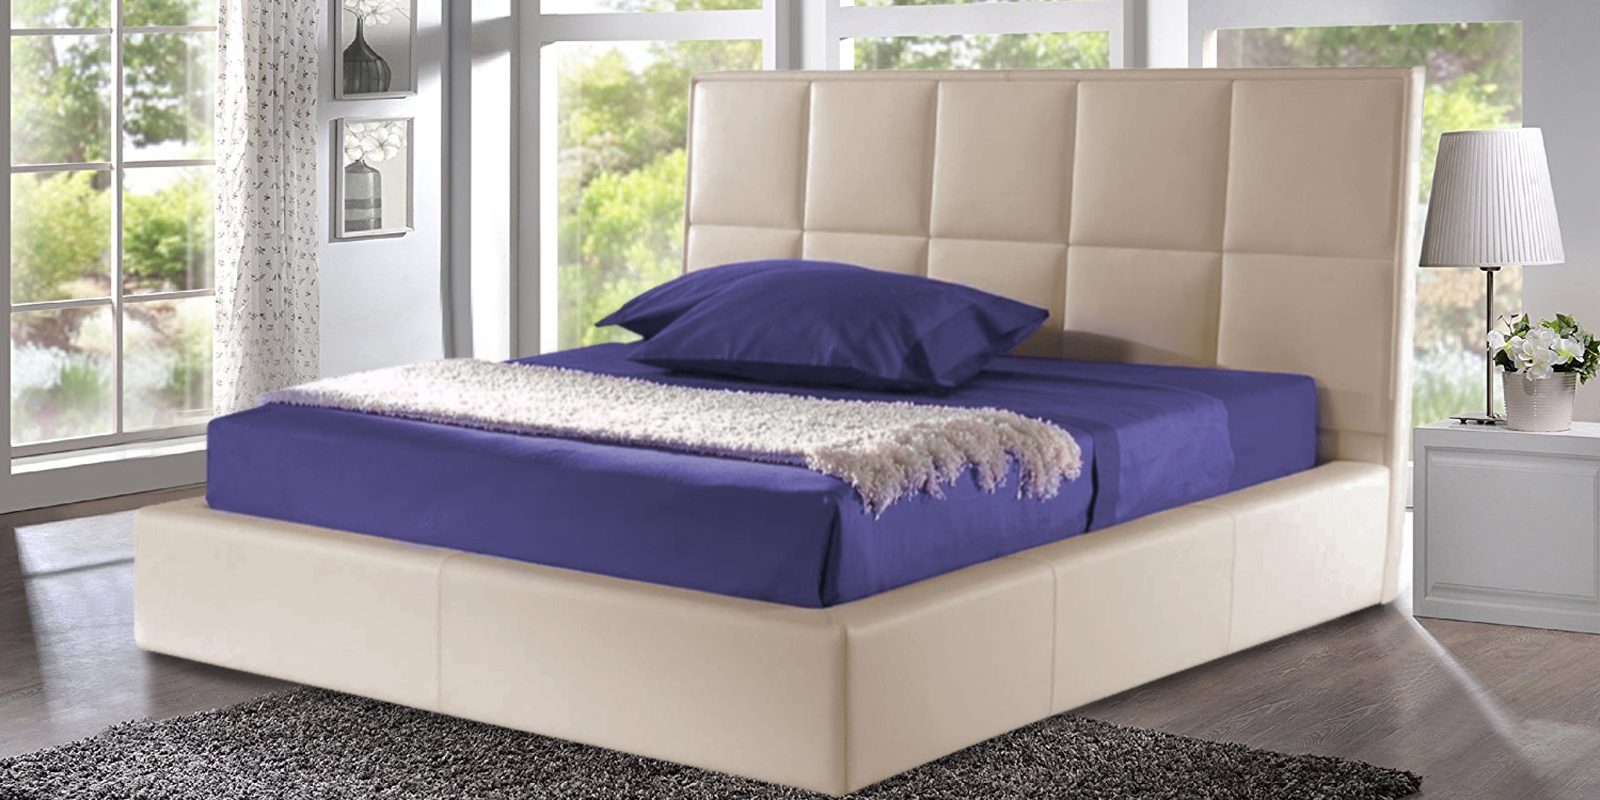 Beige Leatherette Upholstered Bed In Queen Size With Storage